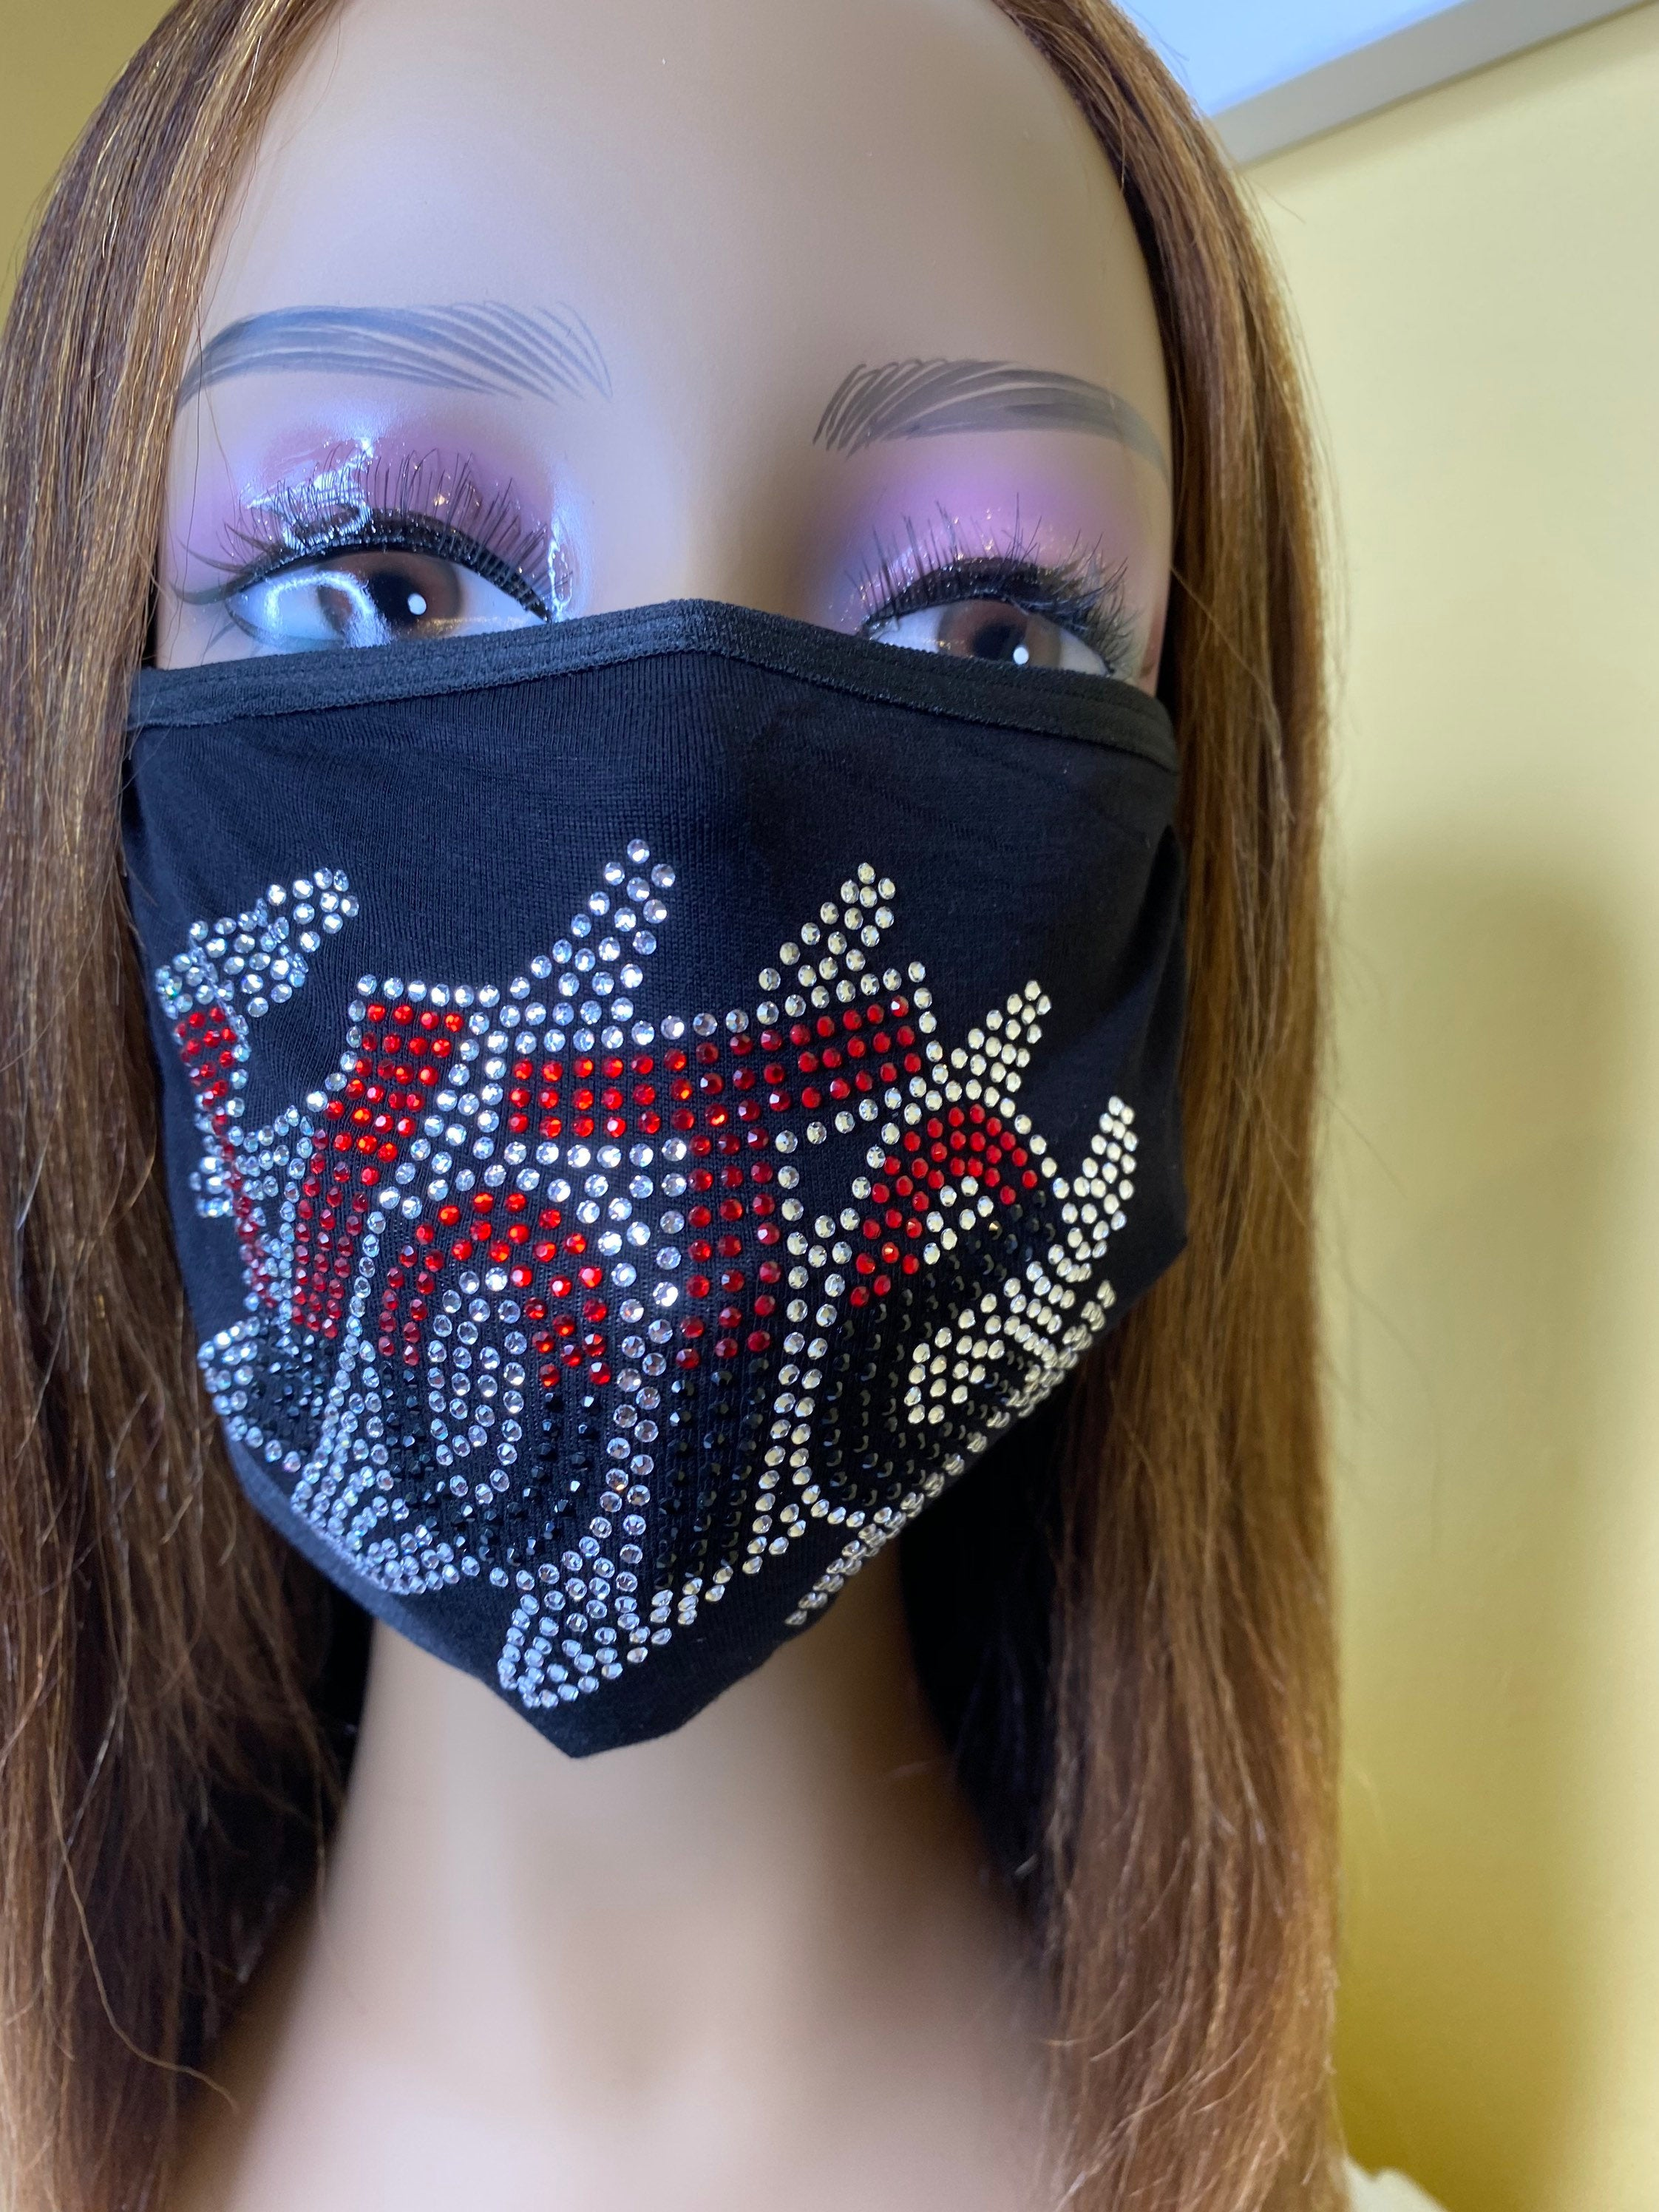 VOTE Rhinestone Bling Face Mask With Filter Pocket Red Black | Simply For Us